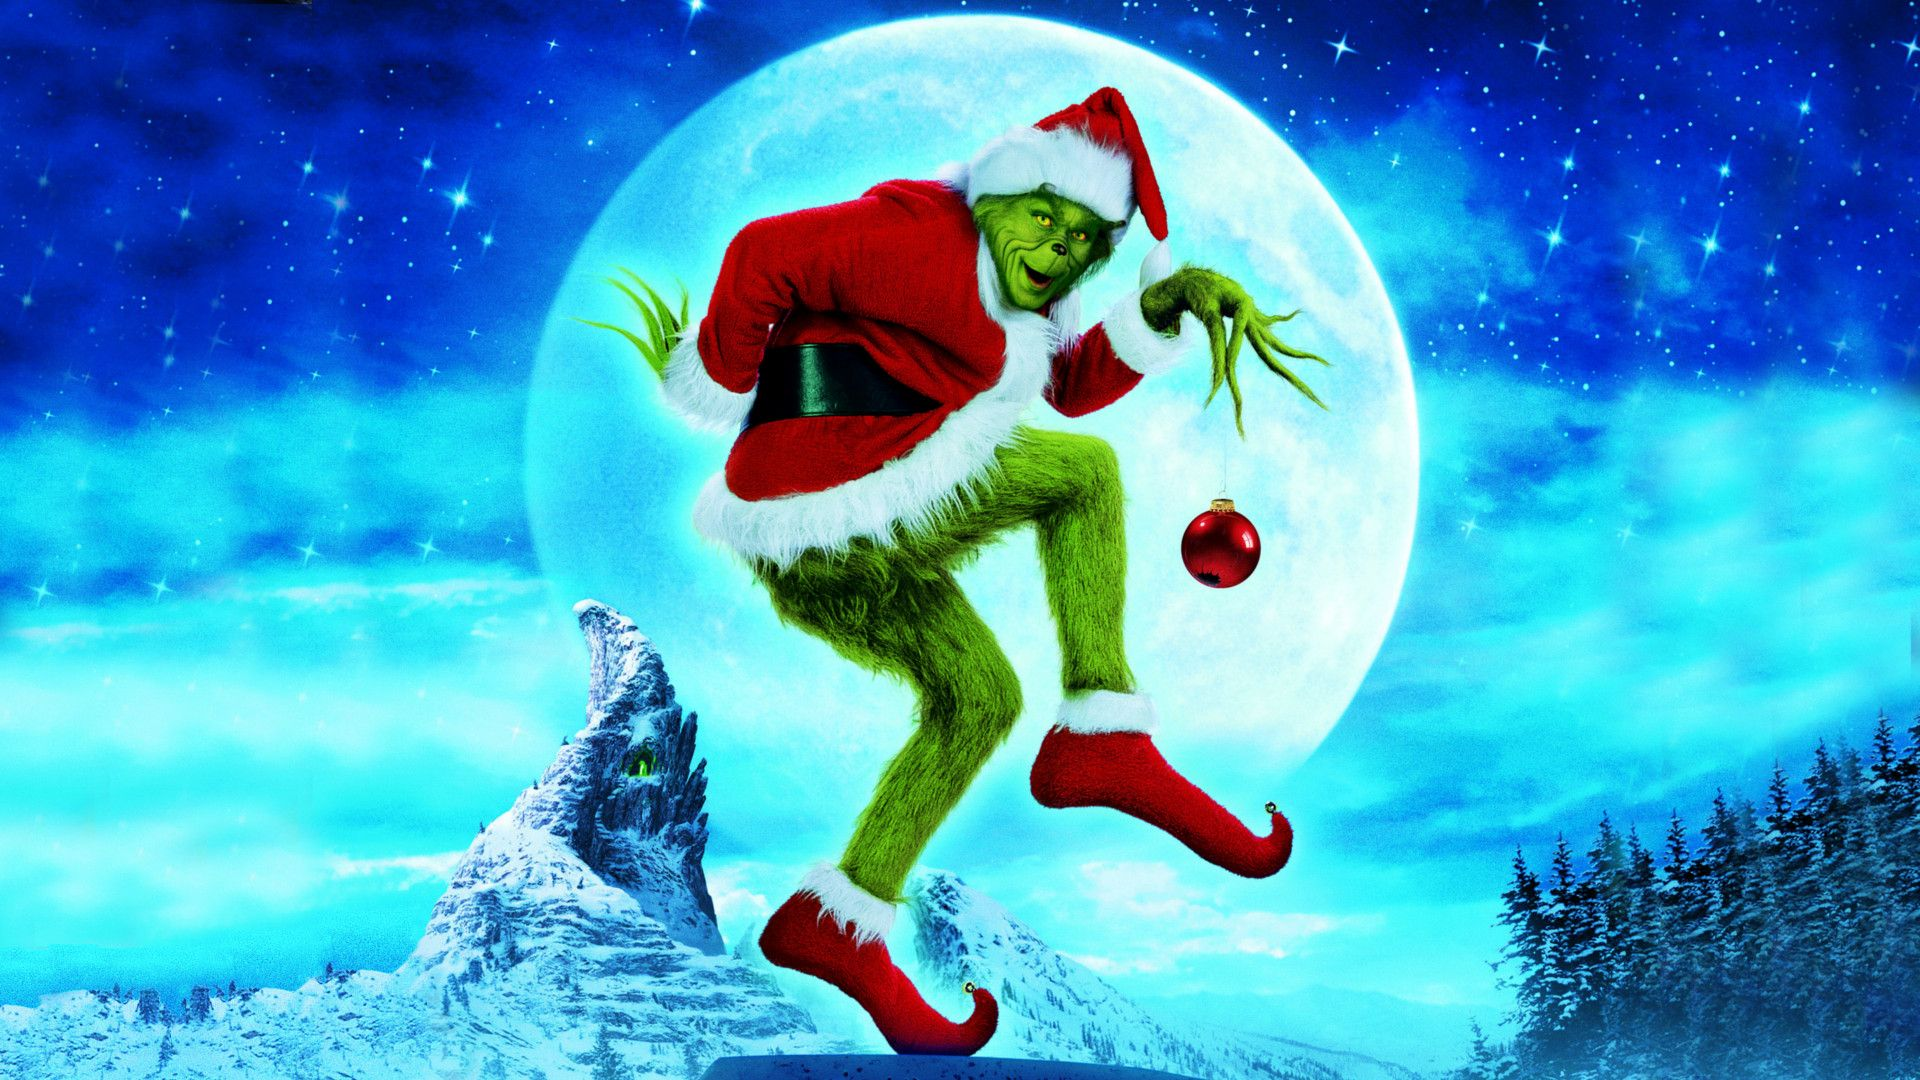 How The Grinch Stole Christmas Wallpaper Sf Wallpaper